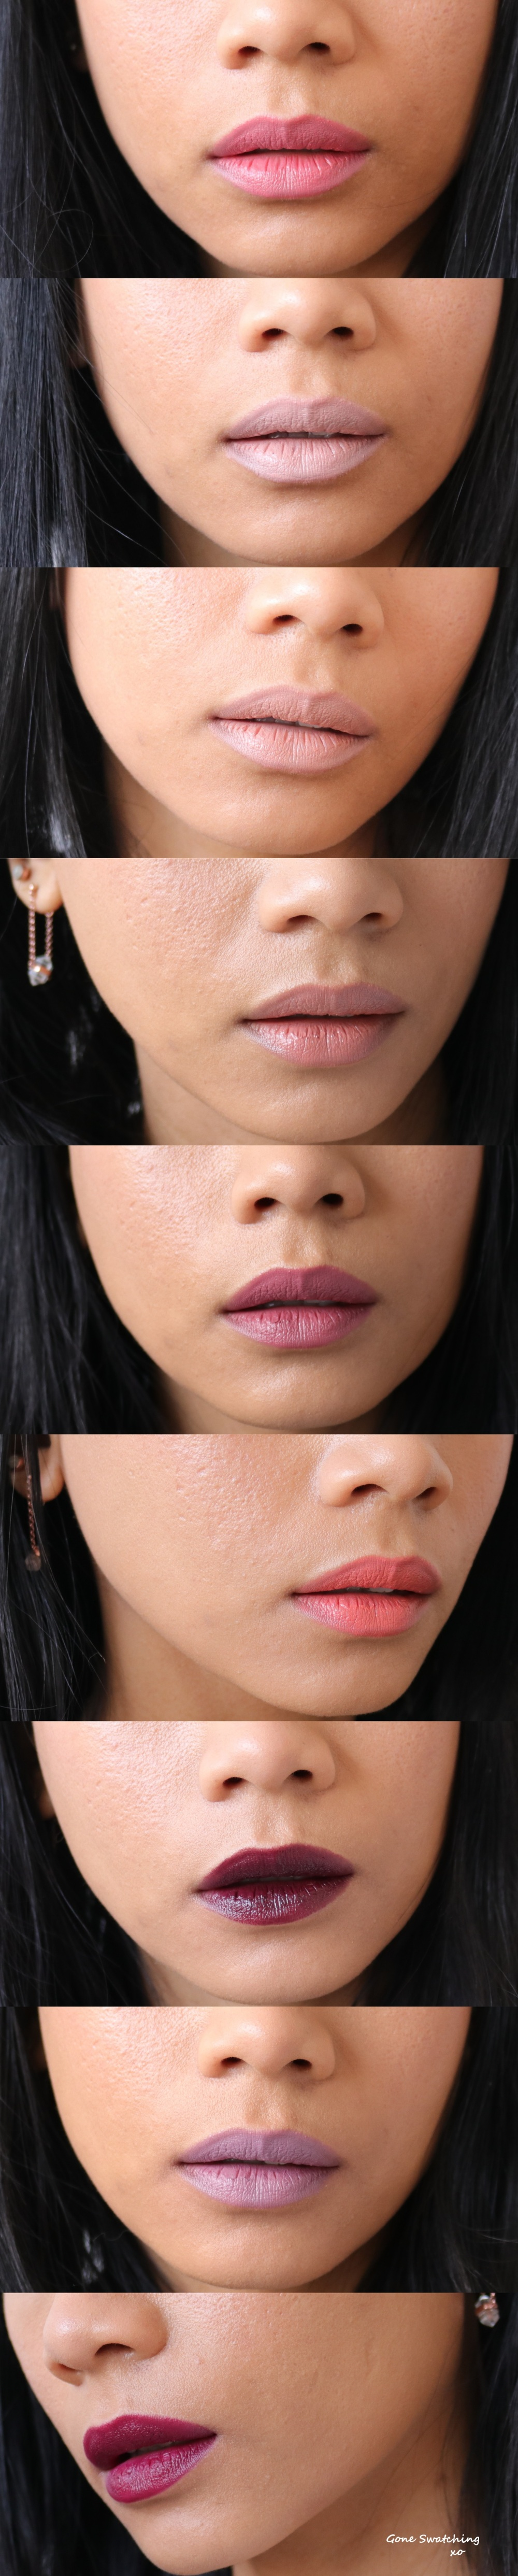 Almost the Entire Range of Nui Cosmetics Natural Lipstick Swatches - Gone Swatching xo